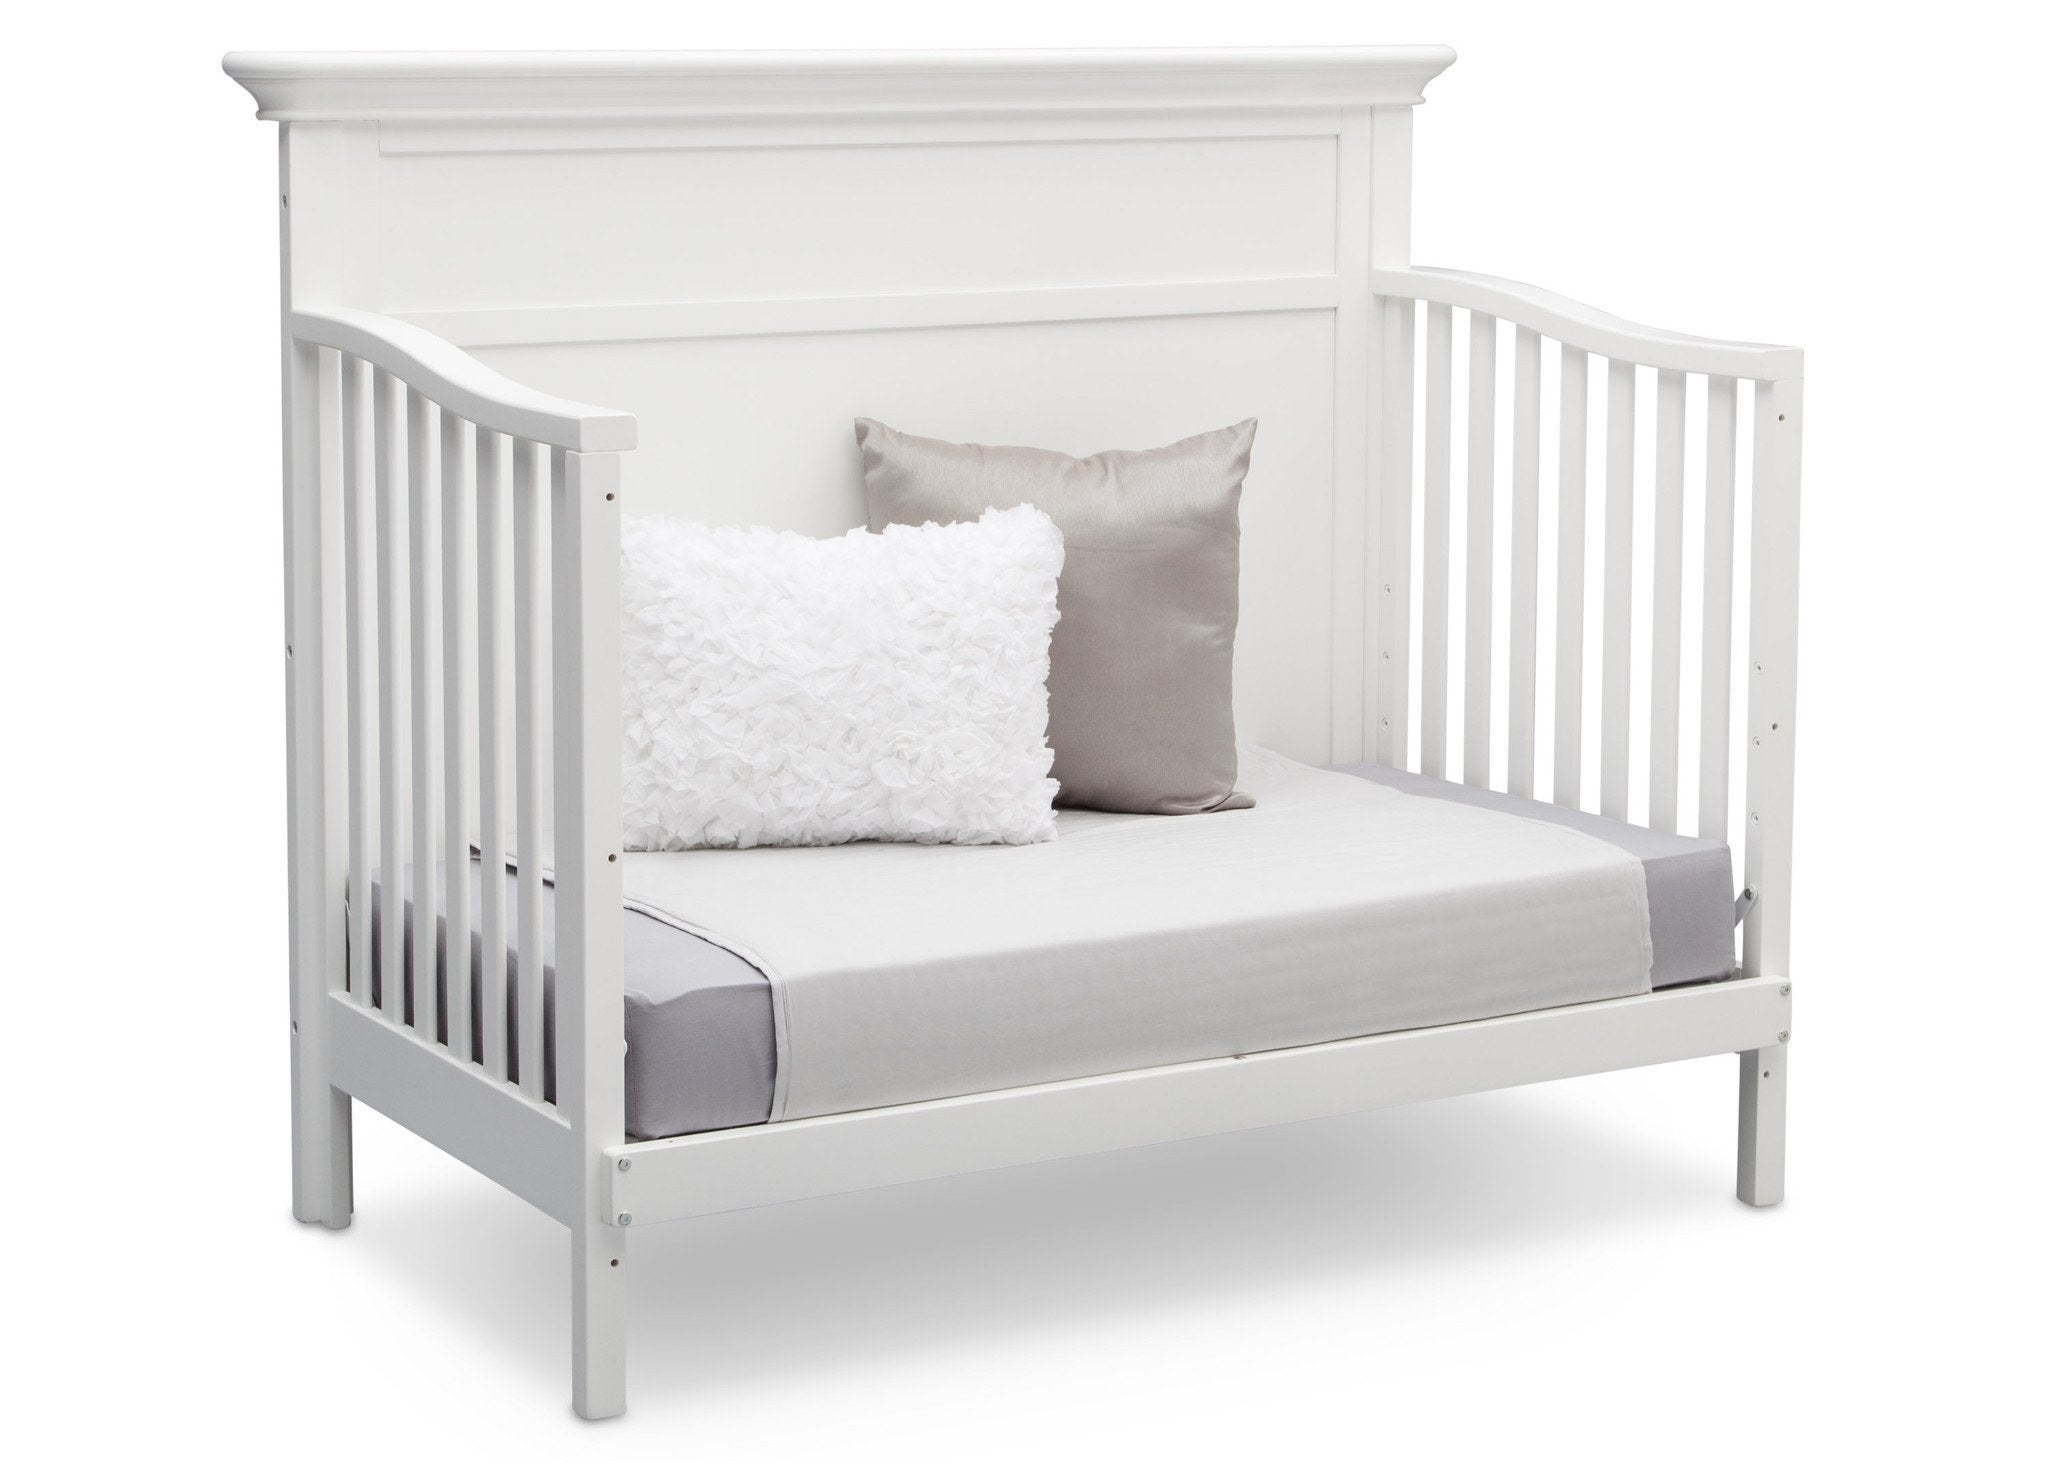 Serta Bianca White (130) Fairmount 4-in-1 Crib, Side View with Daybed Conversion a6a